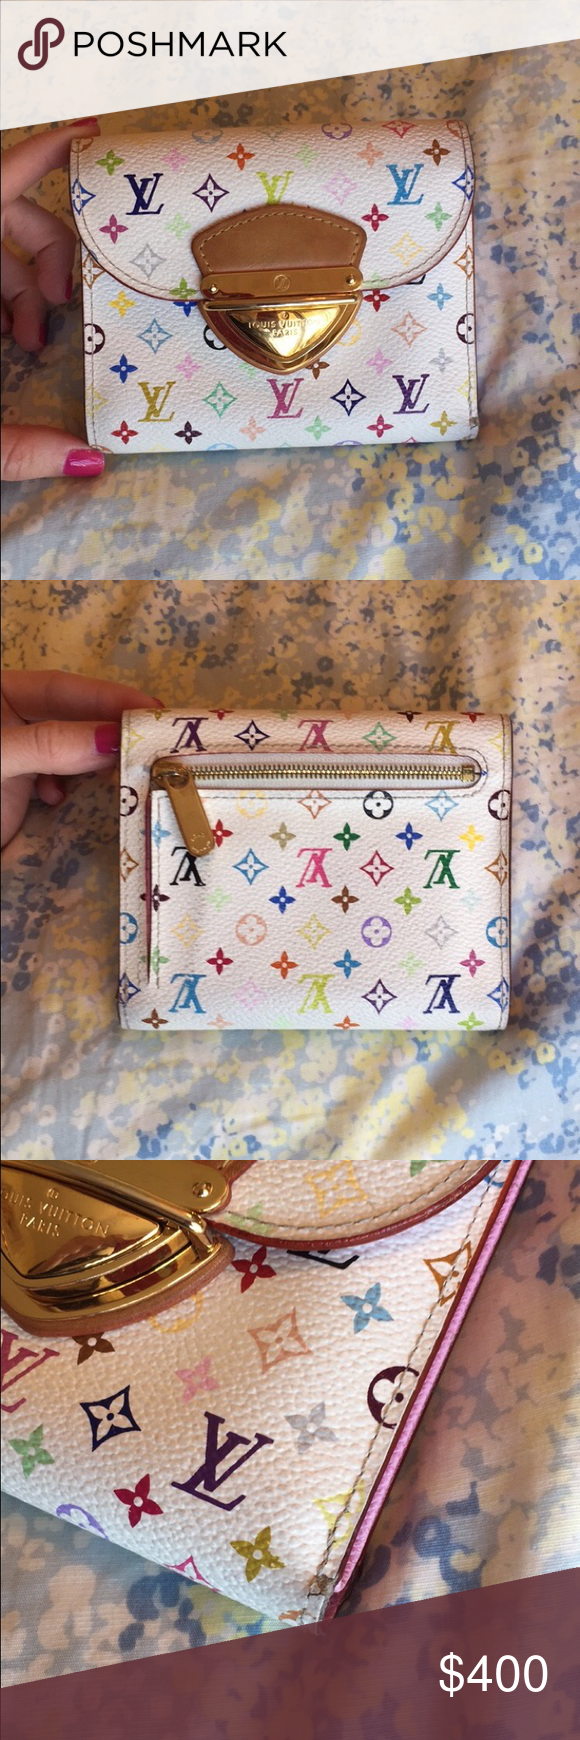 Louis Vuitton Wallet 100% authentic. Has some minor wear (seen in 3rd pic). Has some minor scuffing seen on back of wallet (most likely will come out if cleaned). Overall, still in very good condition and everything in tact. Has pink interior. Louis Vuitton Bags Wallets